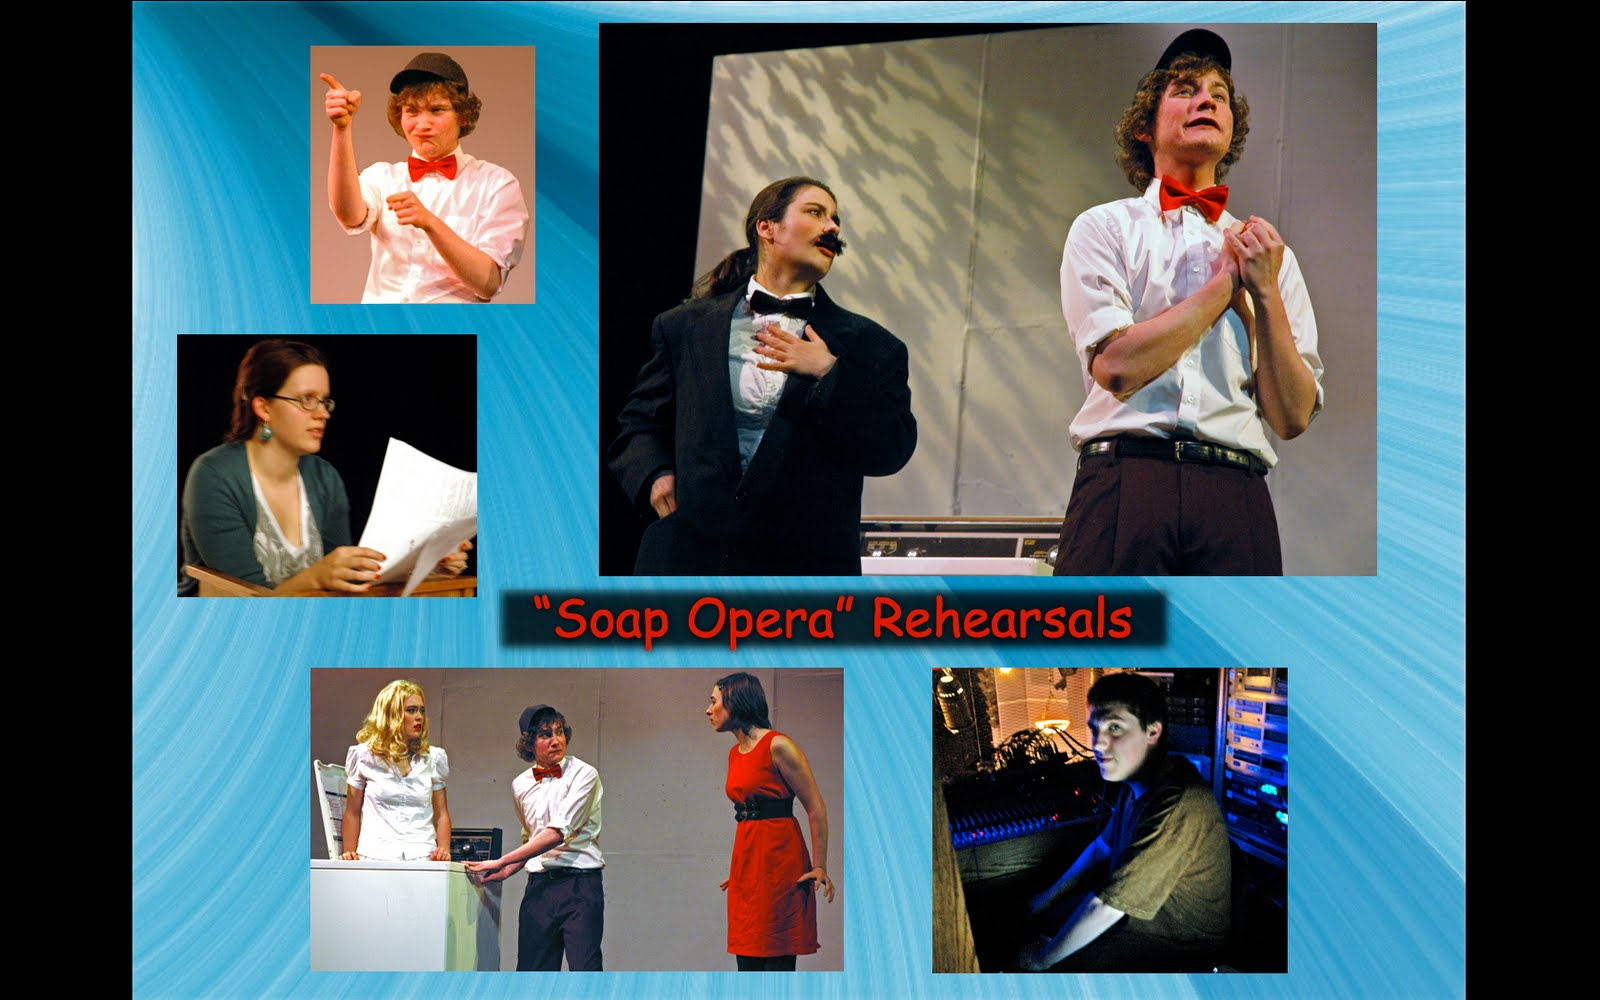 What are the conventions of soap opera?